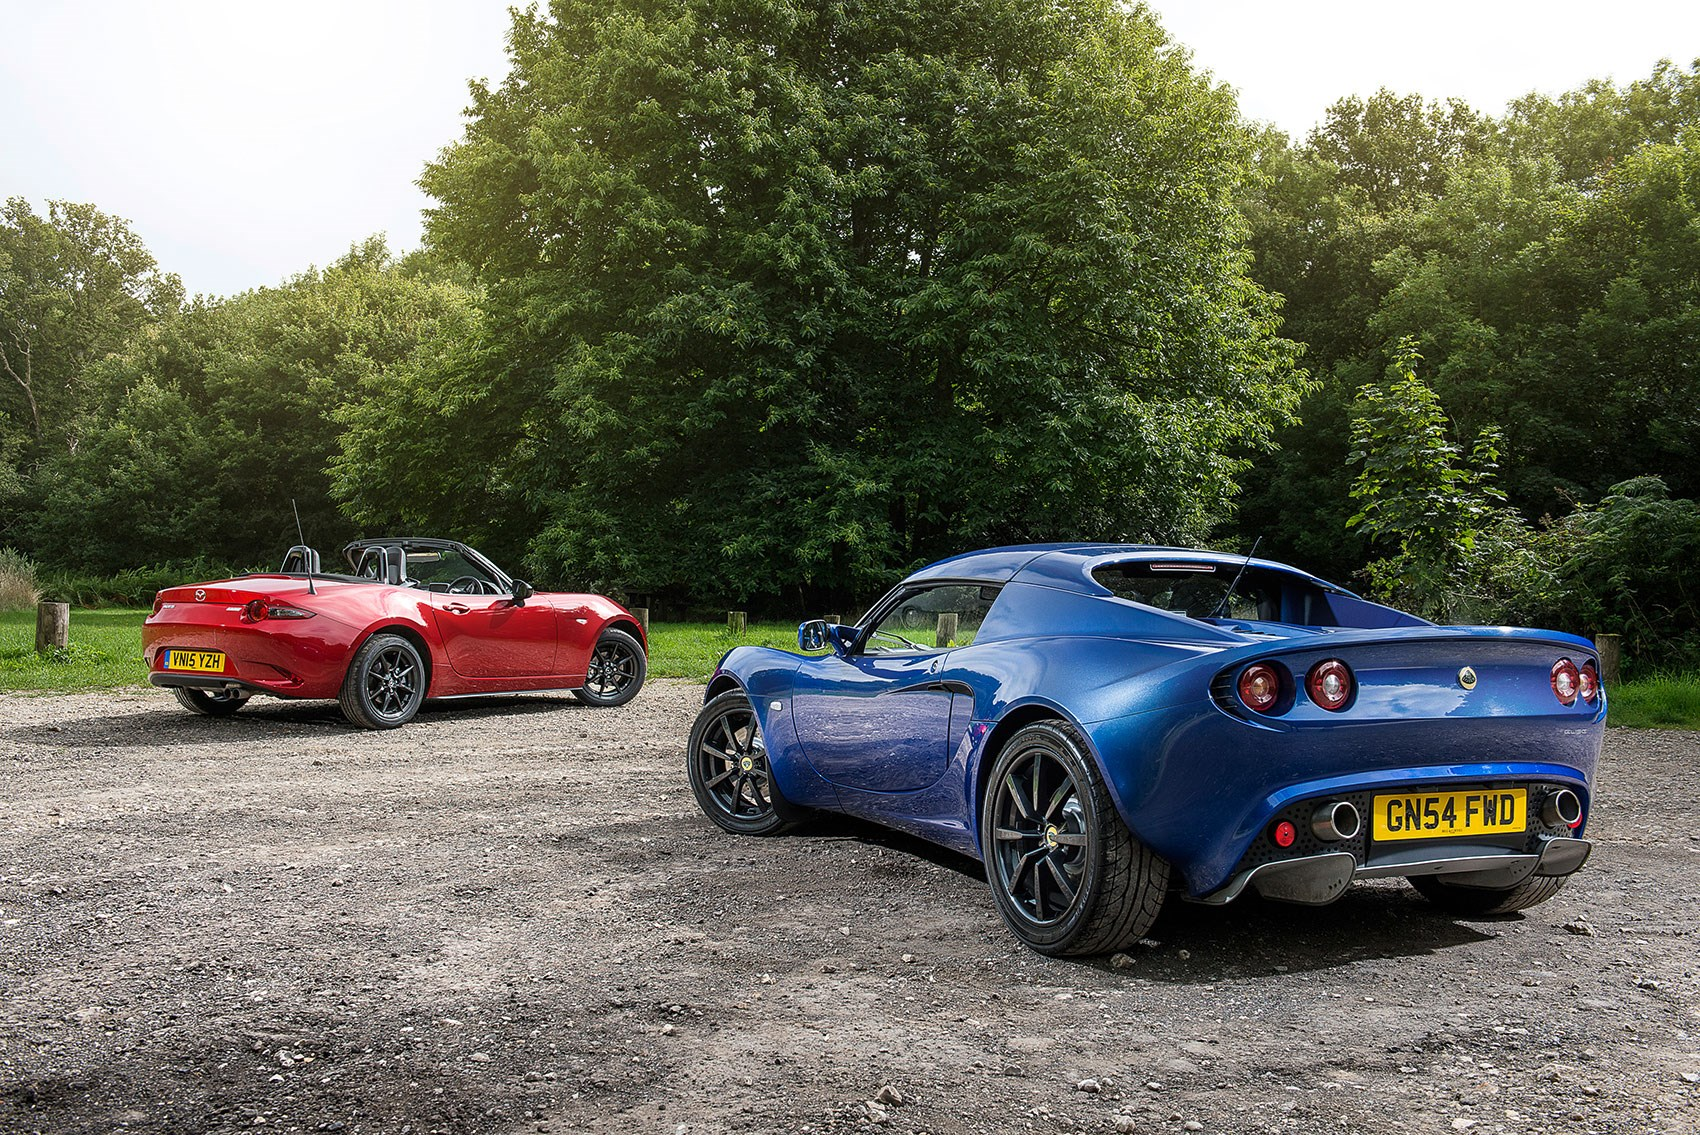 Climb Into The Lotus And You Ll Know How A Letter Feels When Posted Slipping Mx 5 Is Doddle Elise